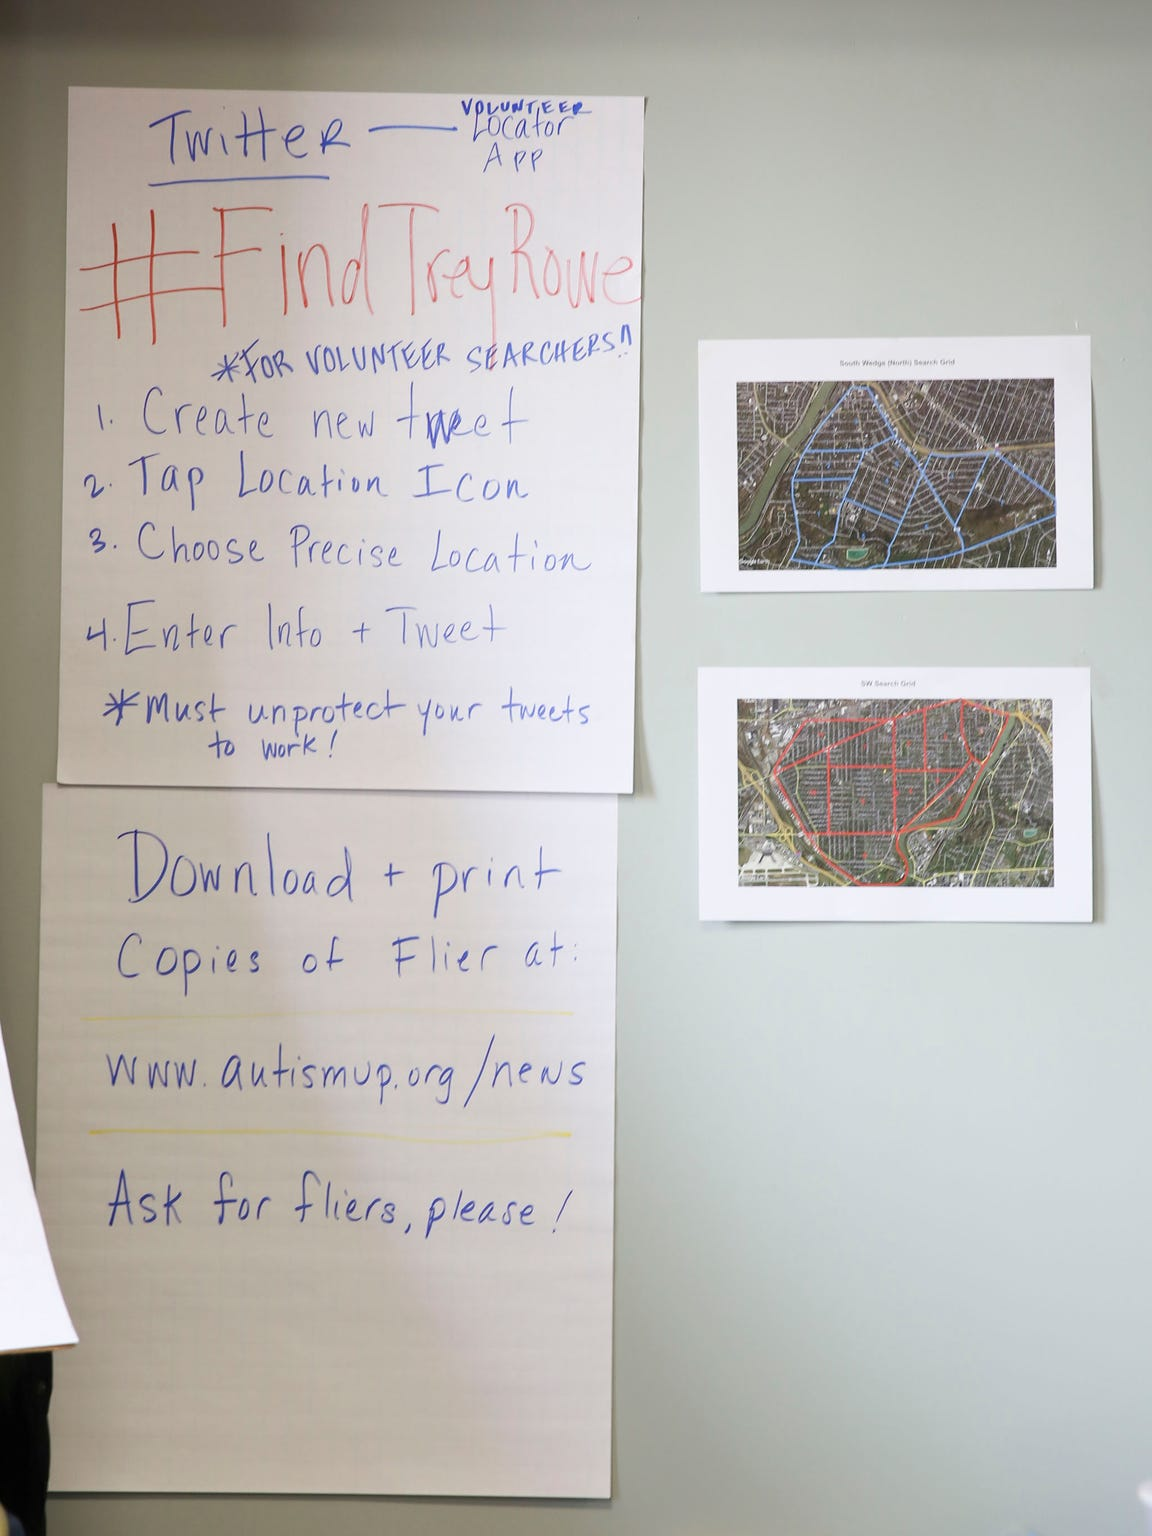 The public was encouraged to used the hashtag #FindTreyRowe with any updates of the missing 14-year-old Trevyan Rowe.